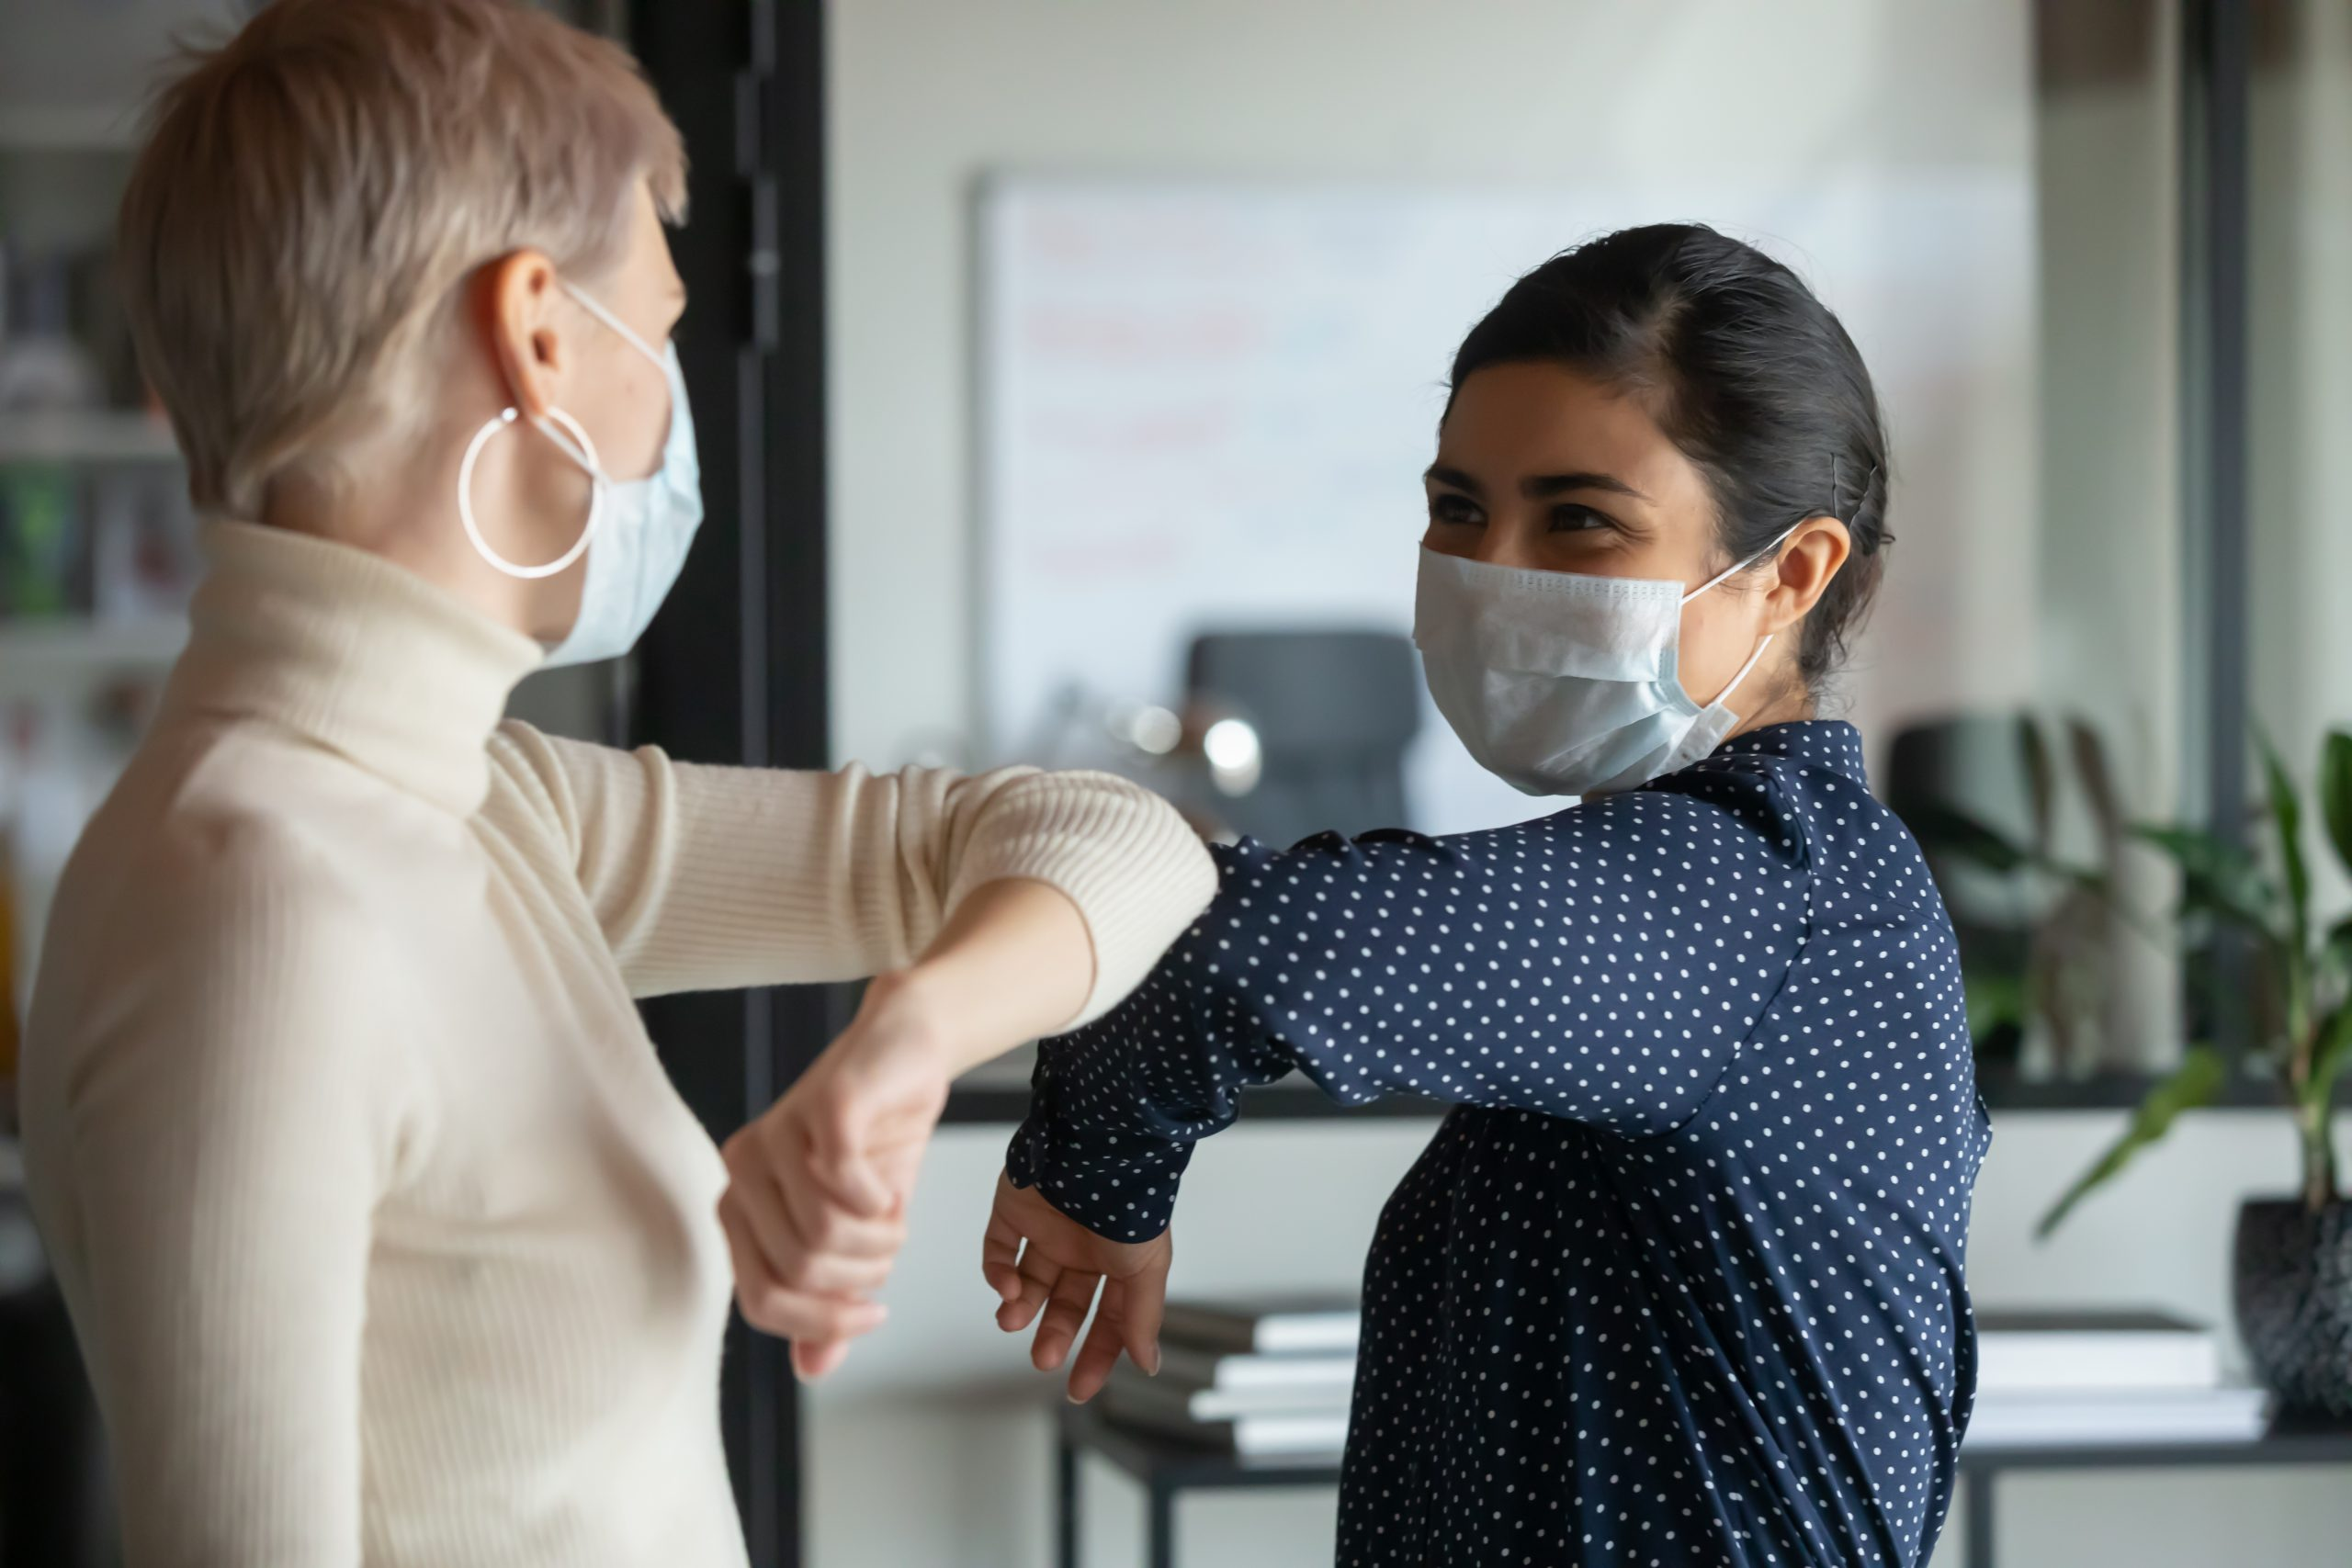 Smiling diverse female colleagues wearing protective face masks greeting bumping elbows at workplace